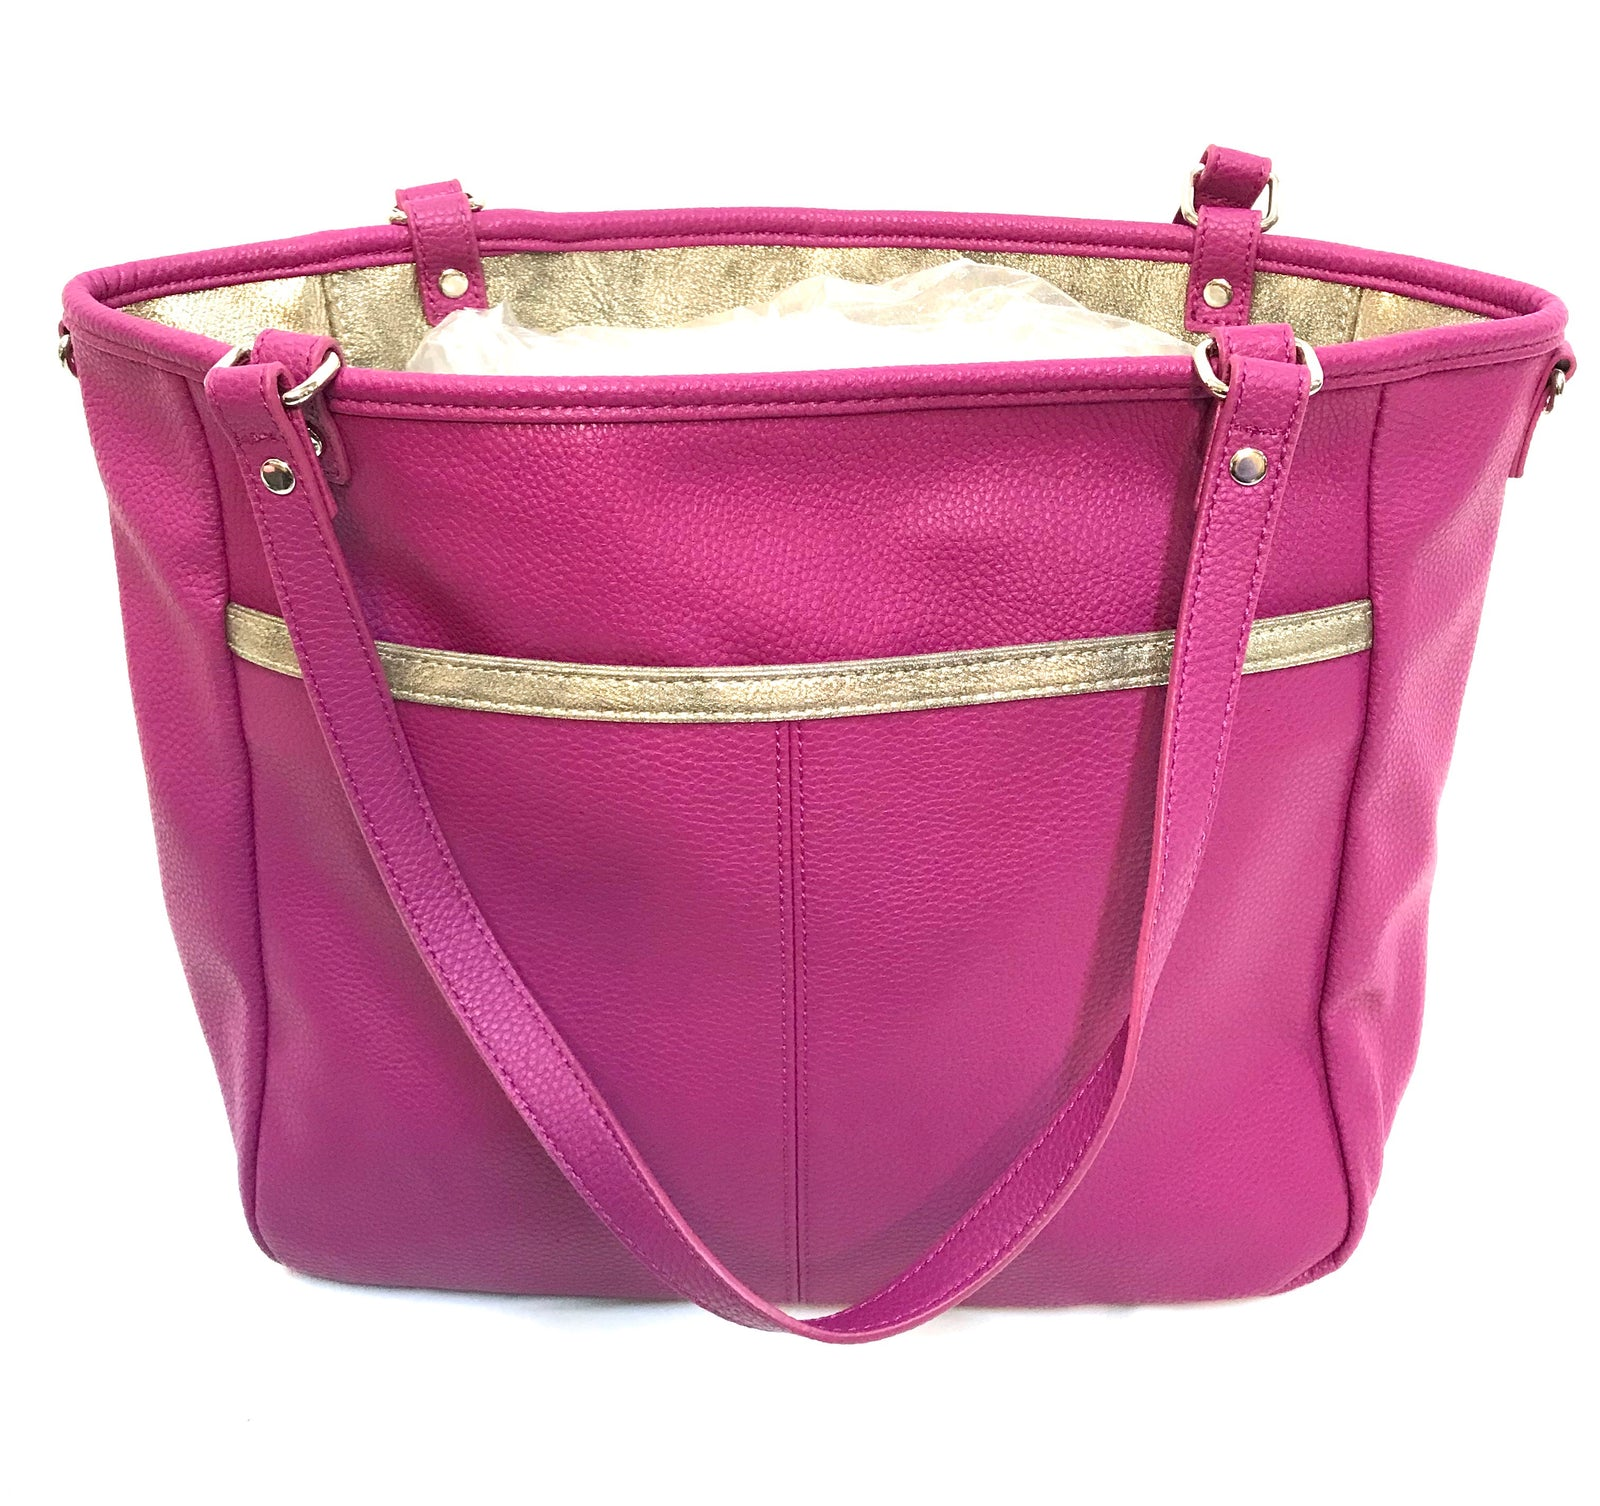 Jewel 31 Handbag